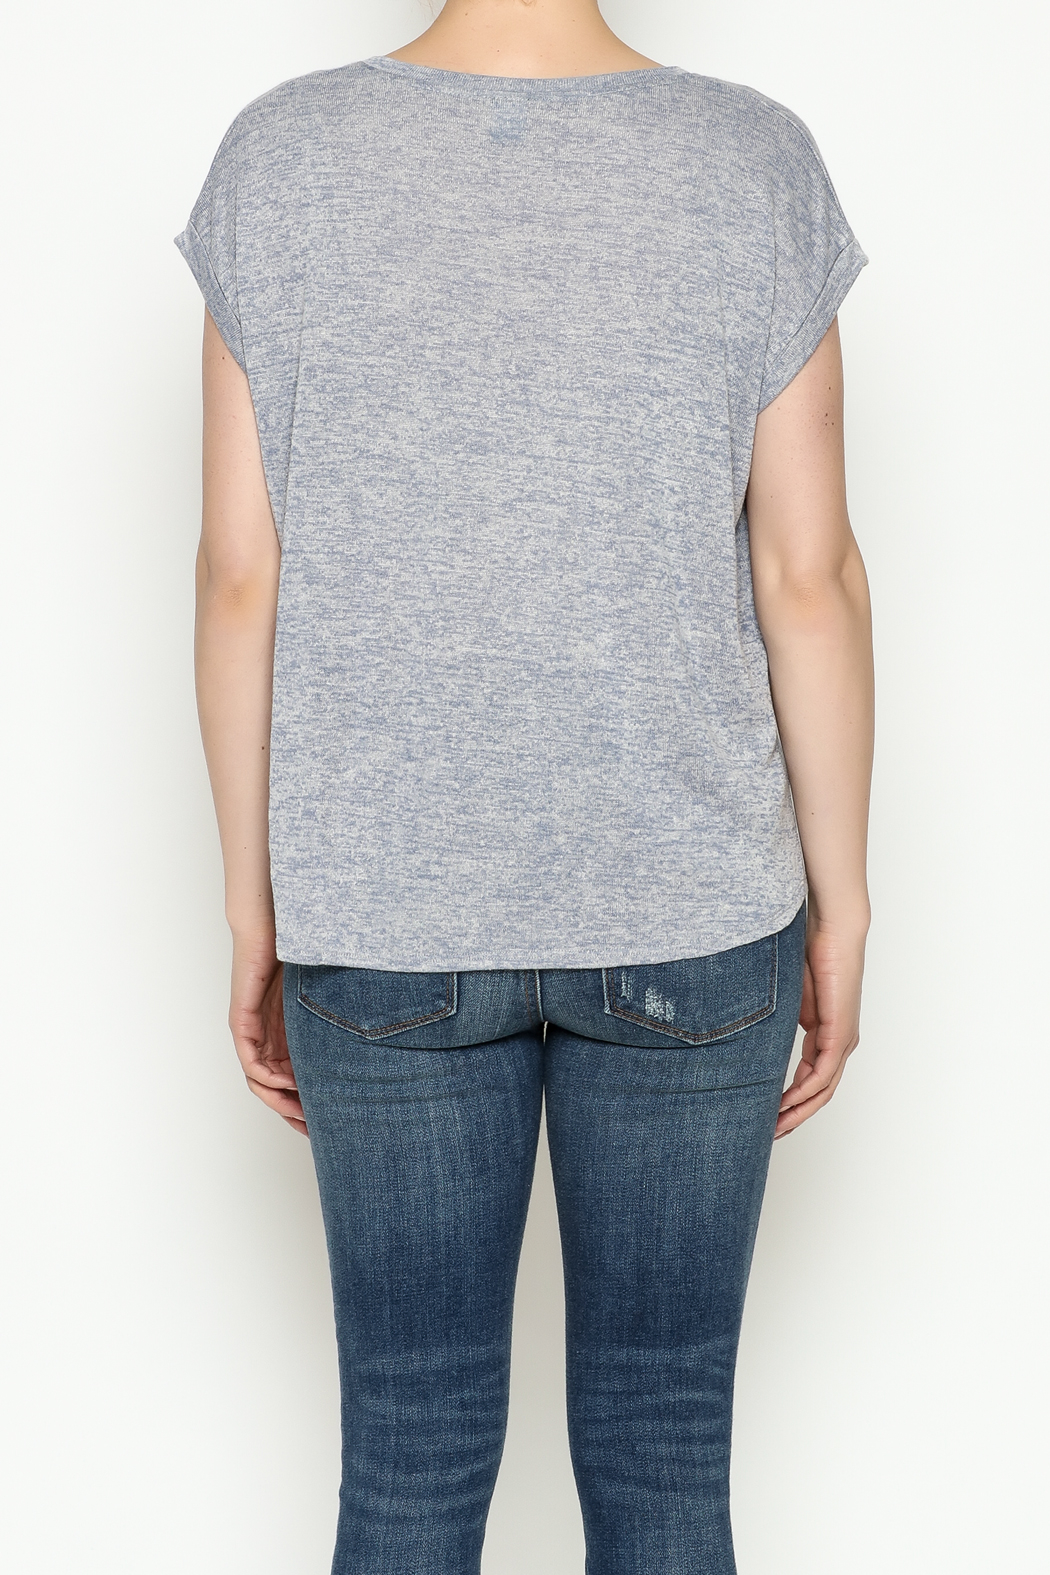 Gentle Fawn Boyfriend V Neck Tee - Back Cropped Image